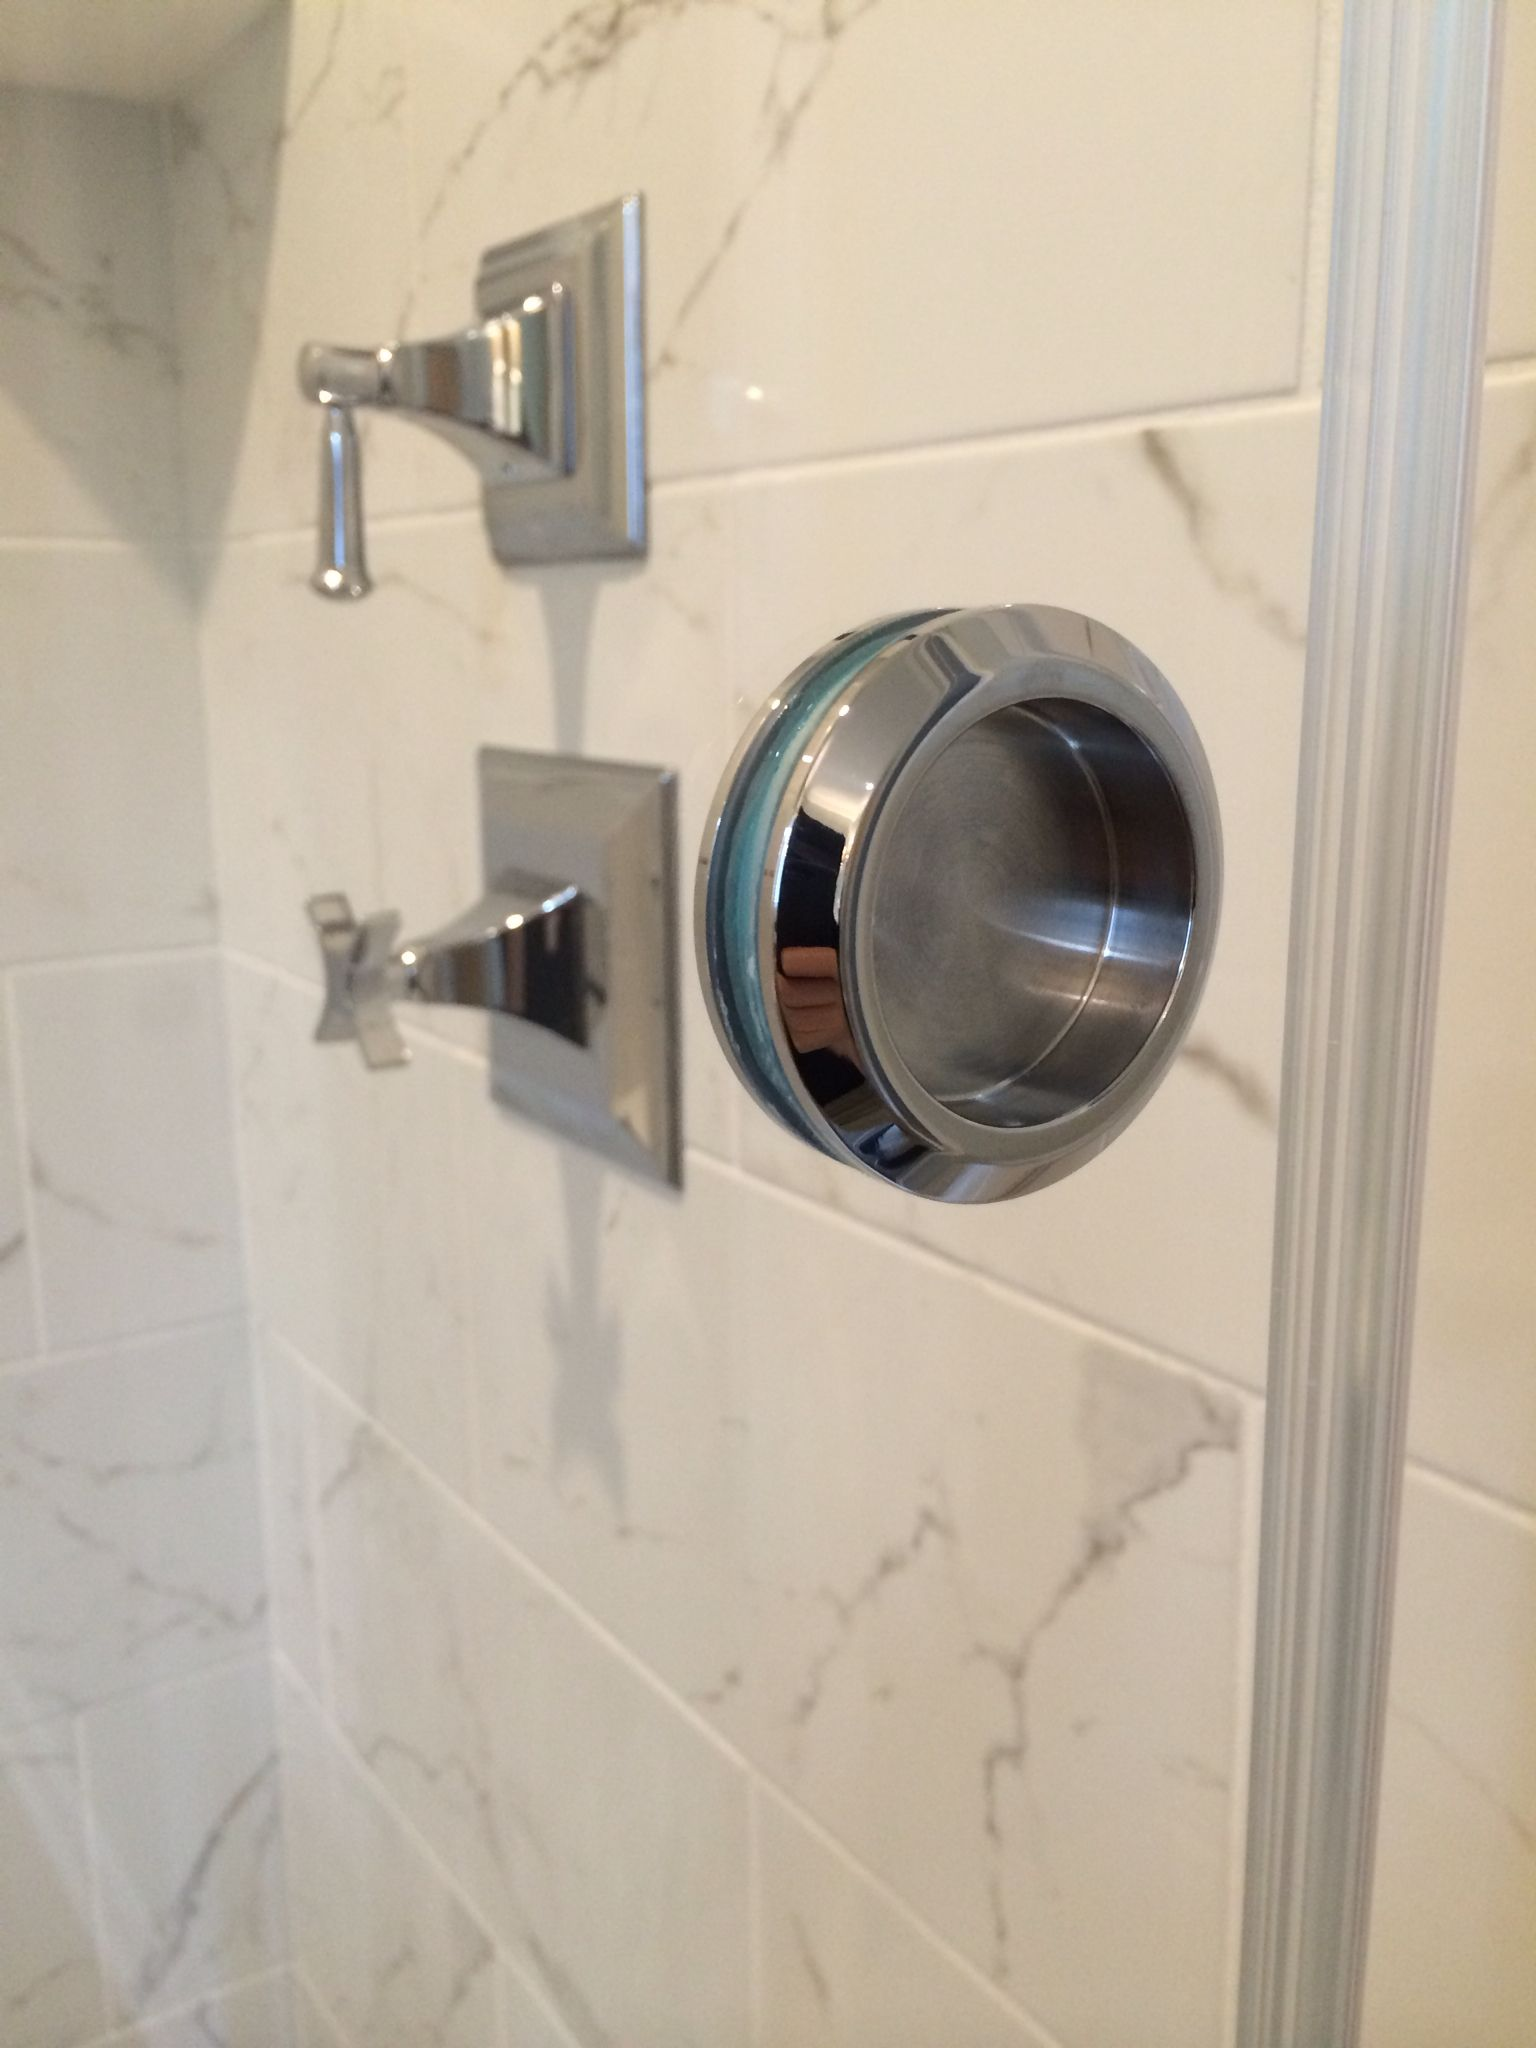 2 Closed Circle Pull Typically Used With Sliding Shower Doors